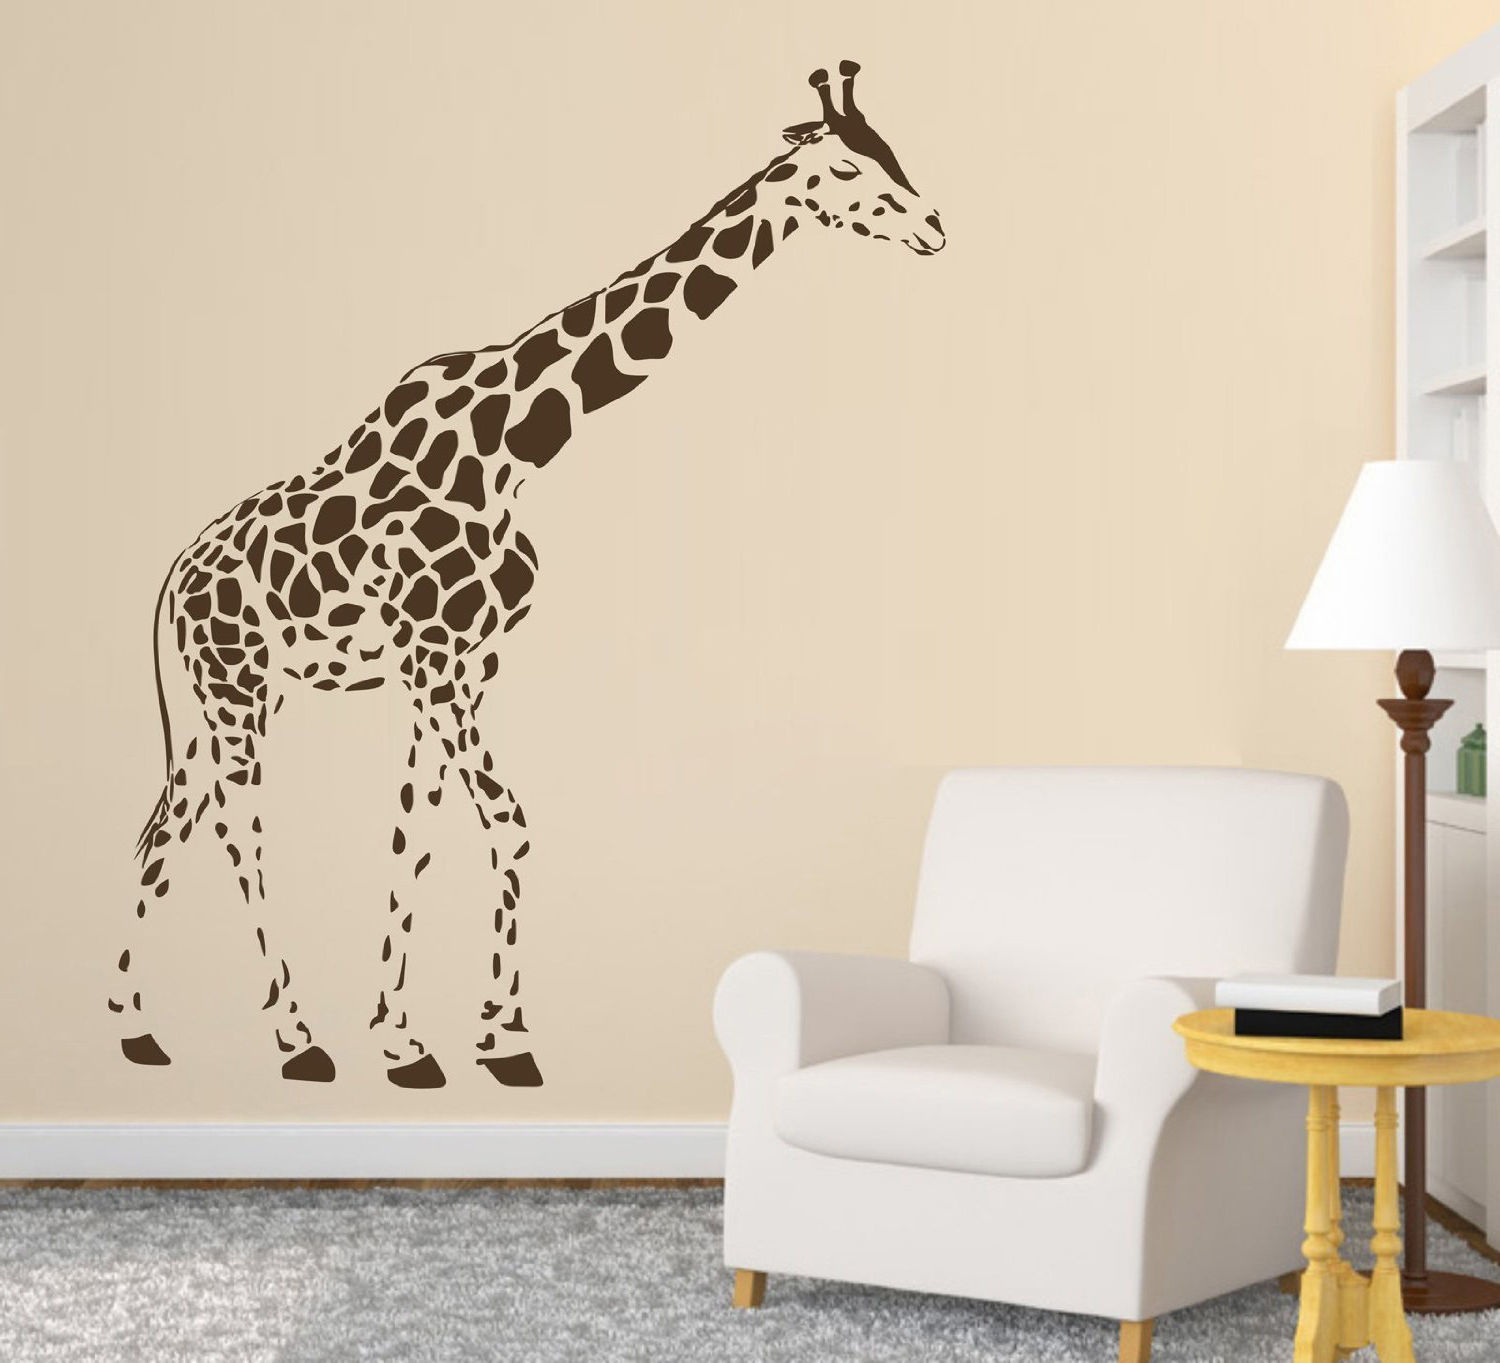 C083 Vente Grande Girafe Stickers Muraux Animaux Decal Art Enfants